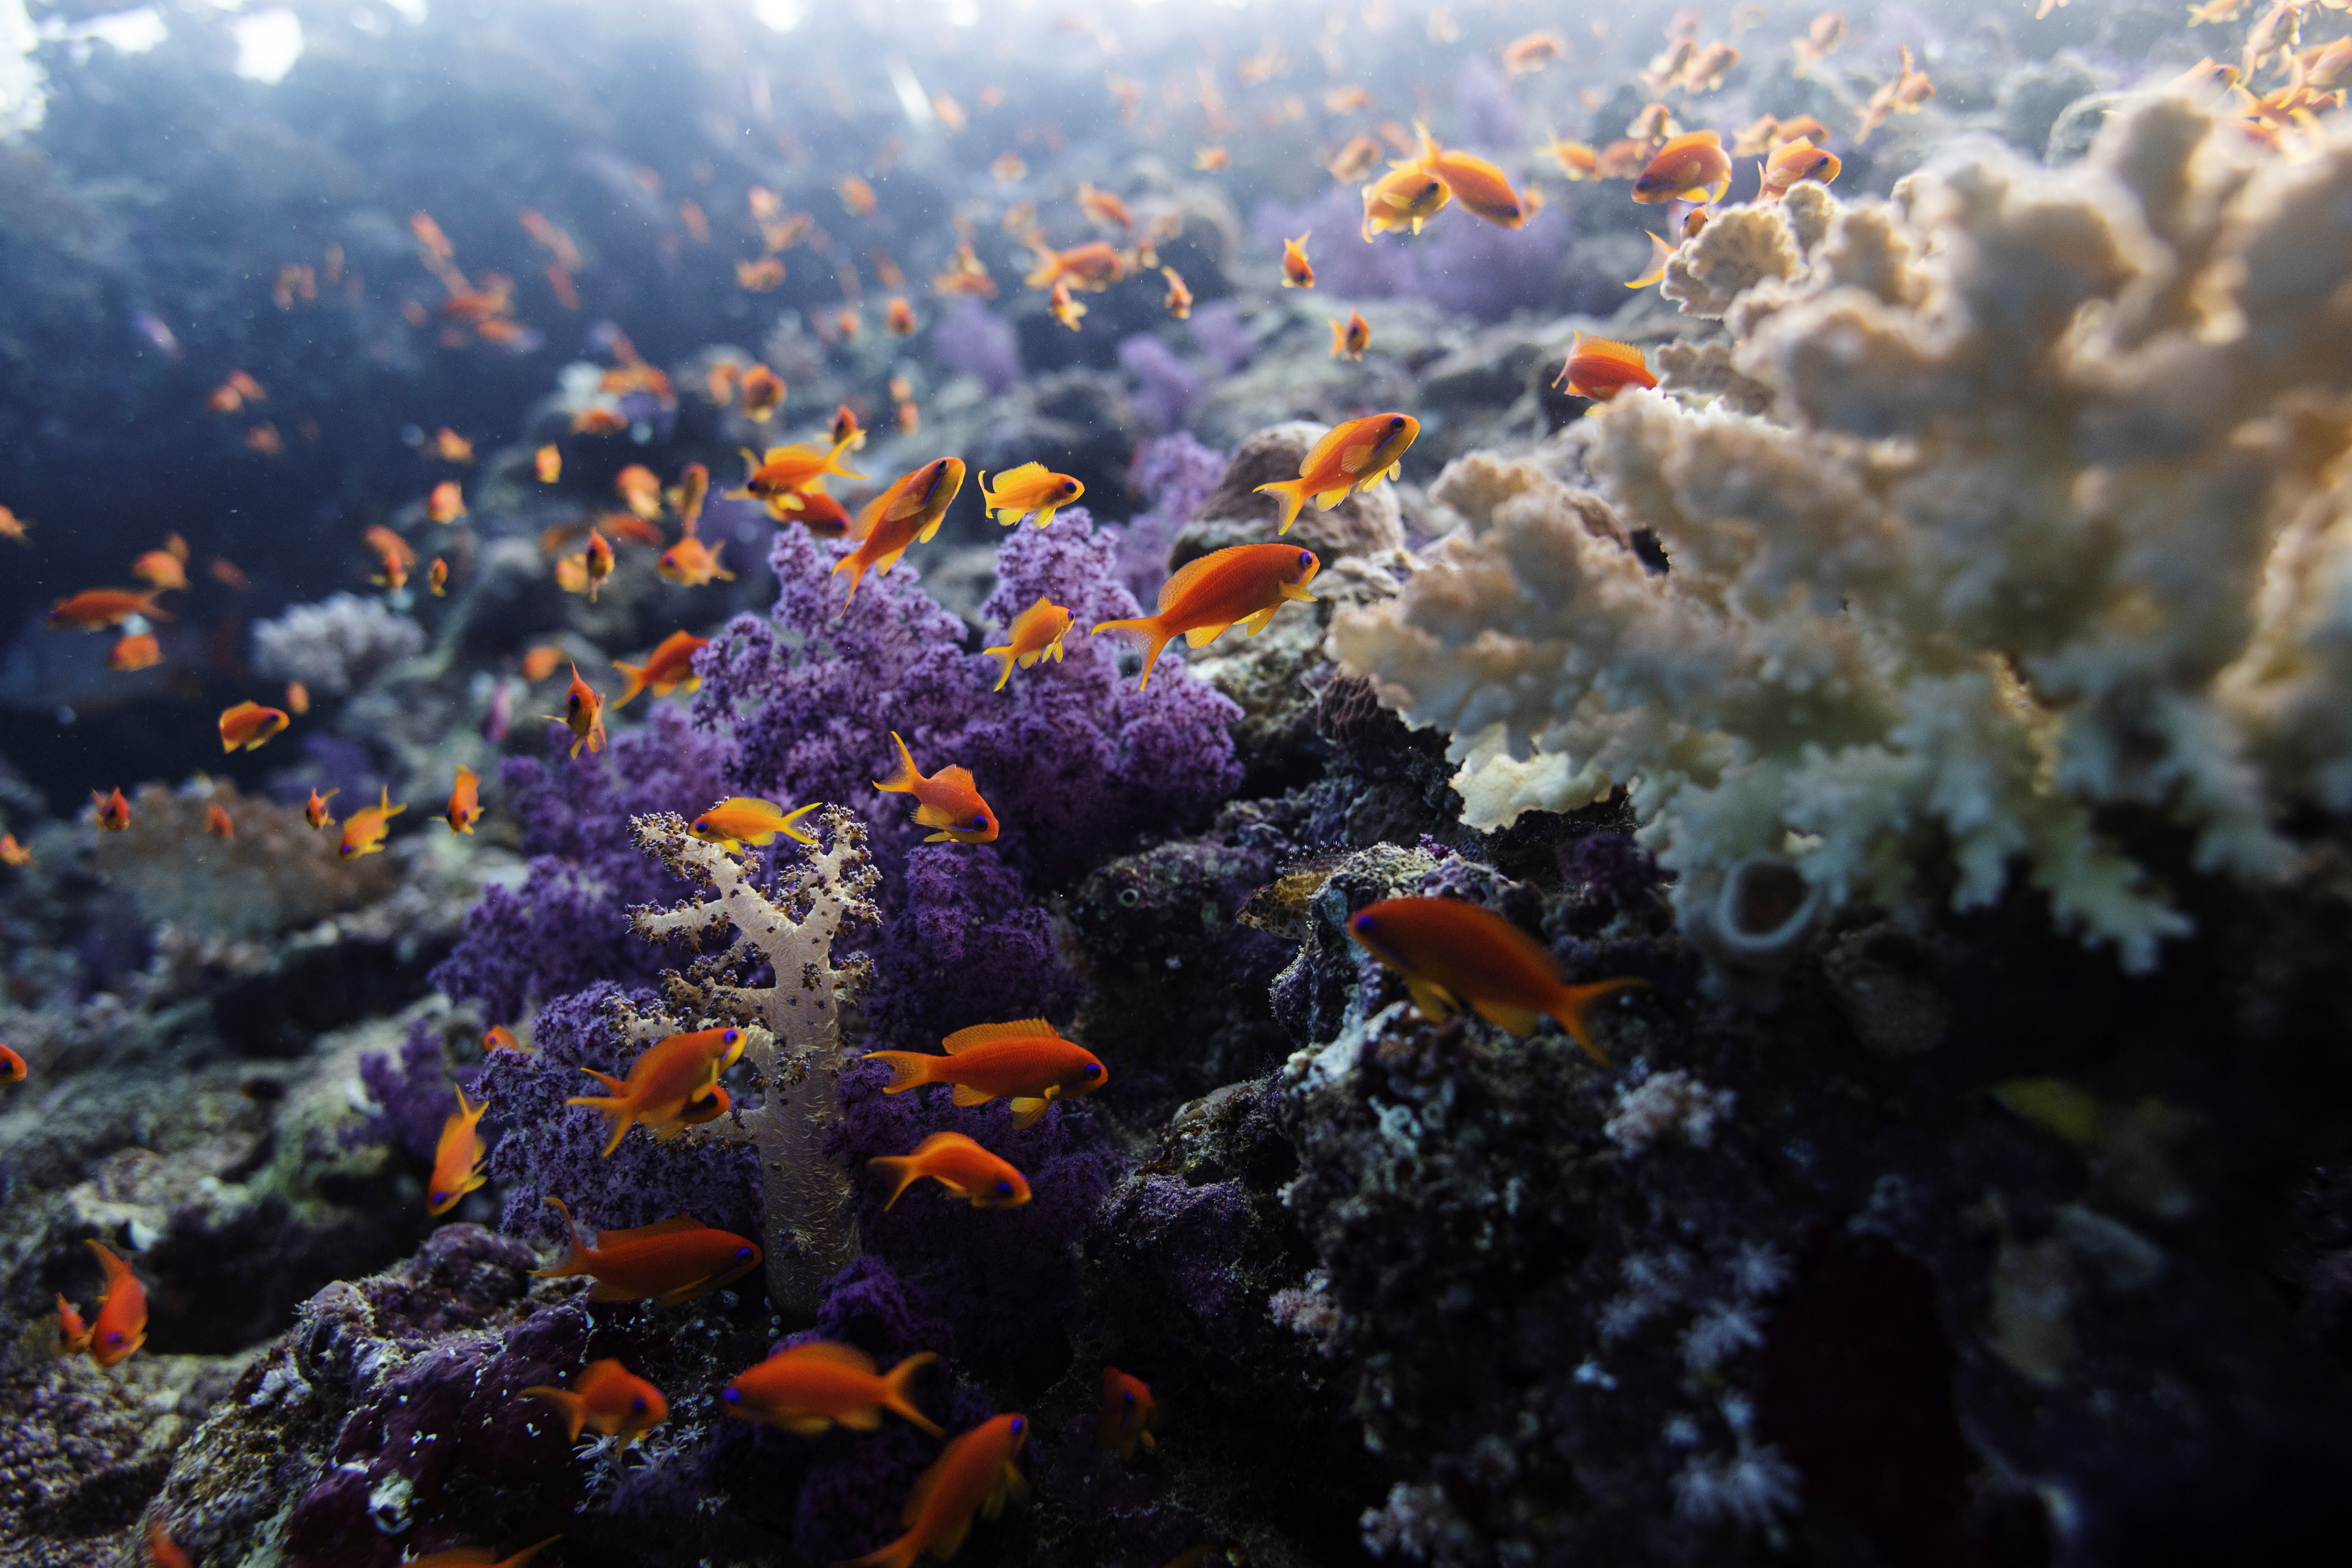 fish swim about in coral under the sea. over the next 20 years, we could lose 90% of all coral reefs.